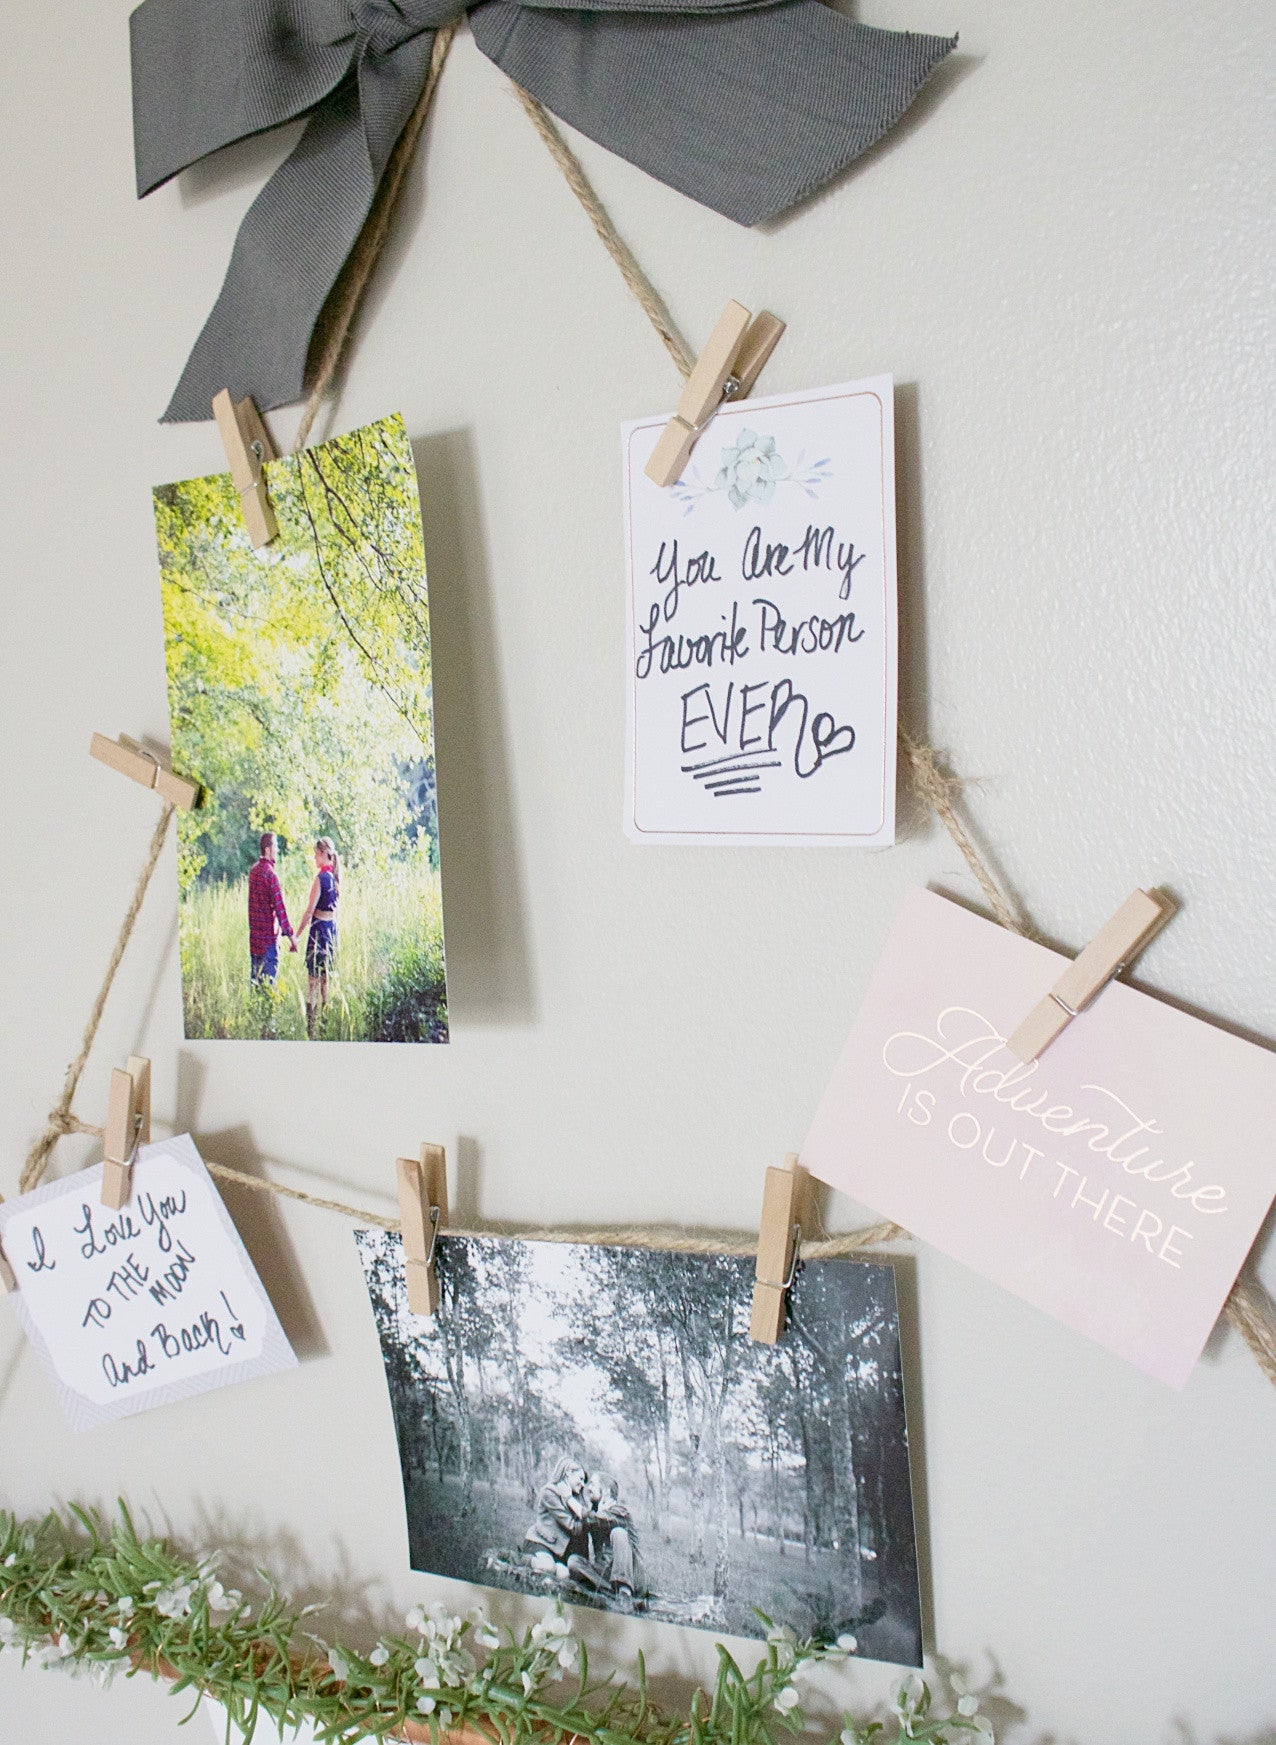 DIY Hanging Display